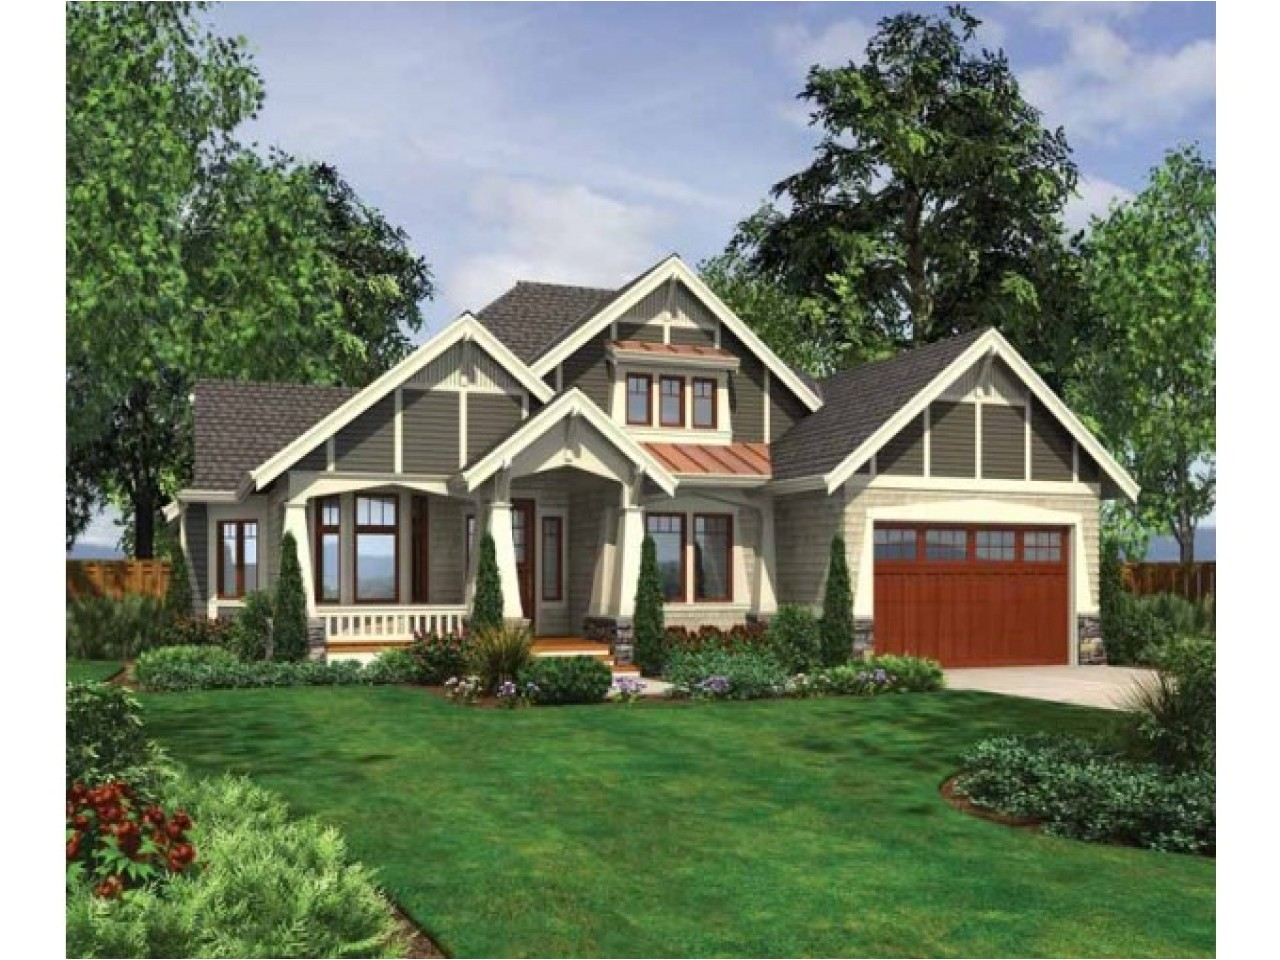 862896fb2b4ee811 exterior ranch craftsman home craftsman style ranch house plans